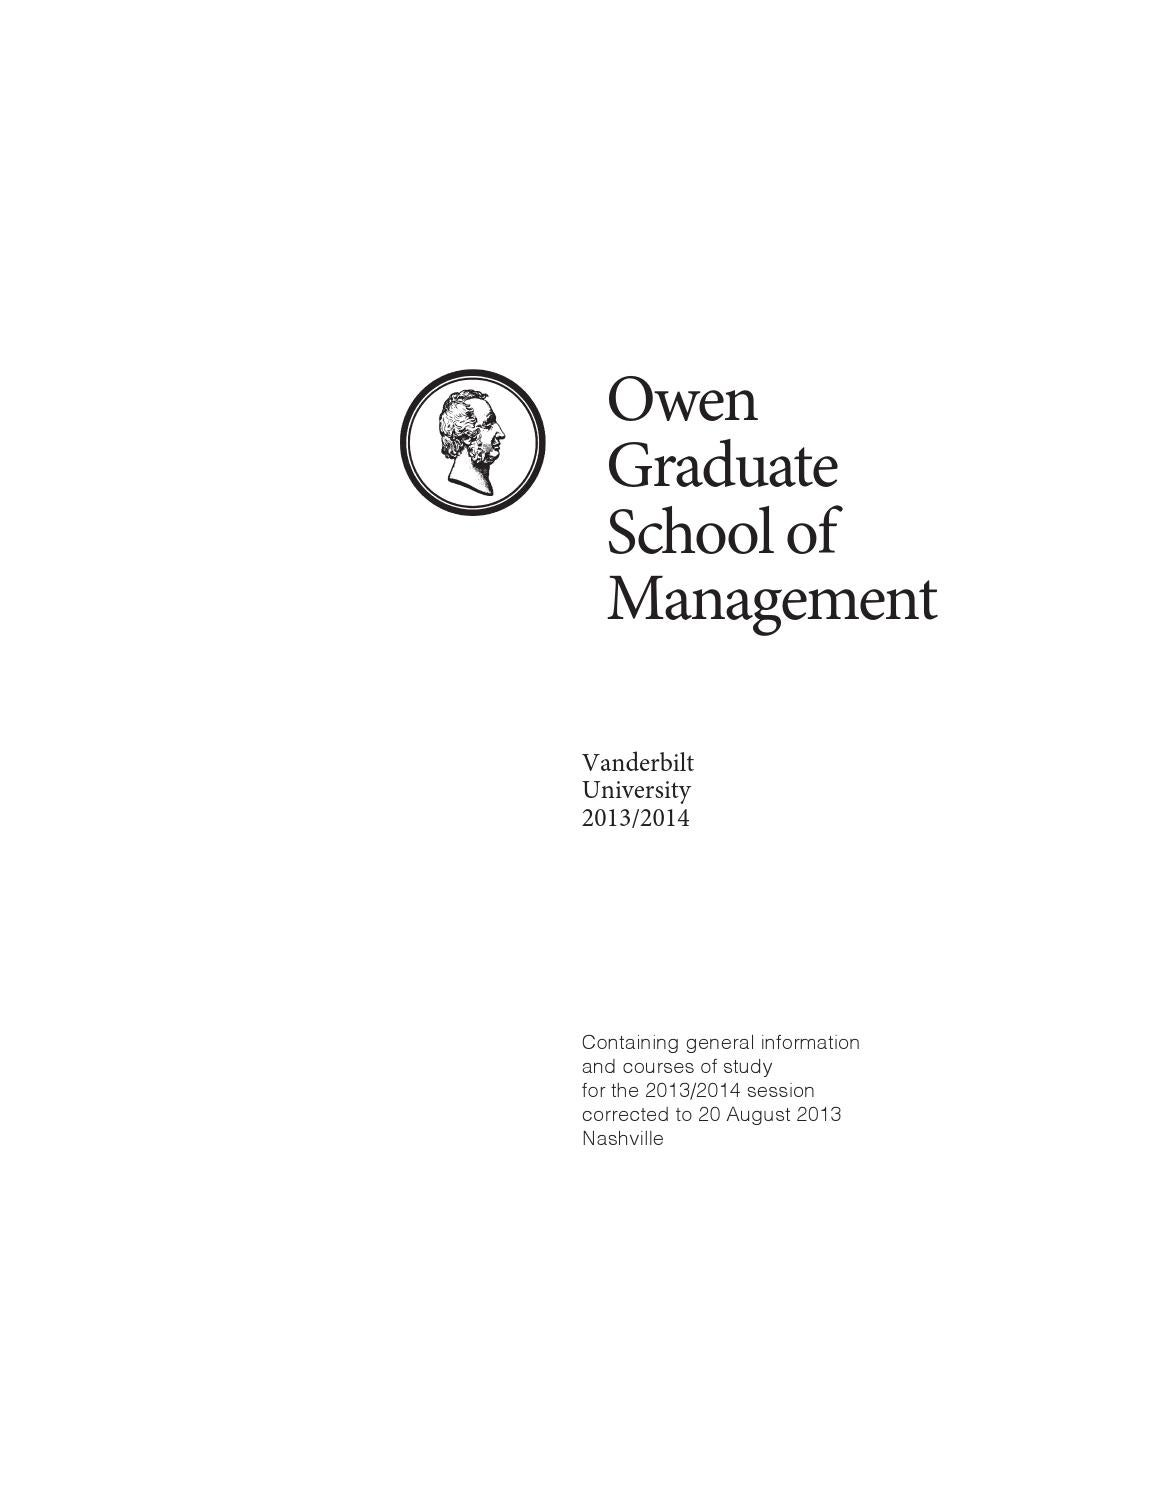 owen school of management essays Kellogg northwestern full-time mba essay 1 school of management is located york stanford tepper ucla anderson unc kenan-flagler vanderbilt owen wharton.